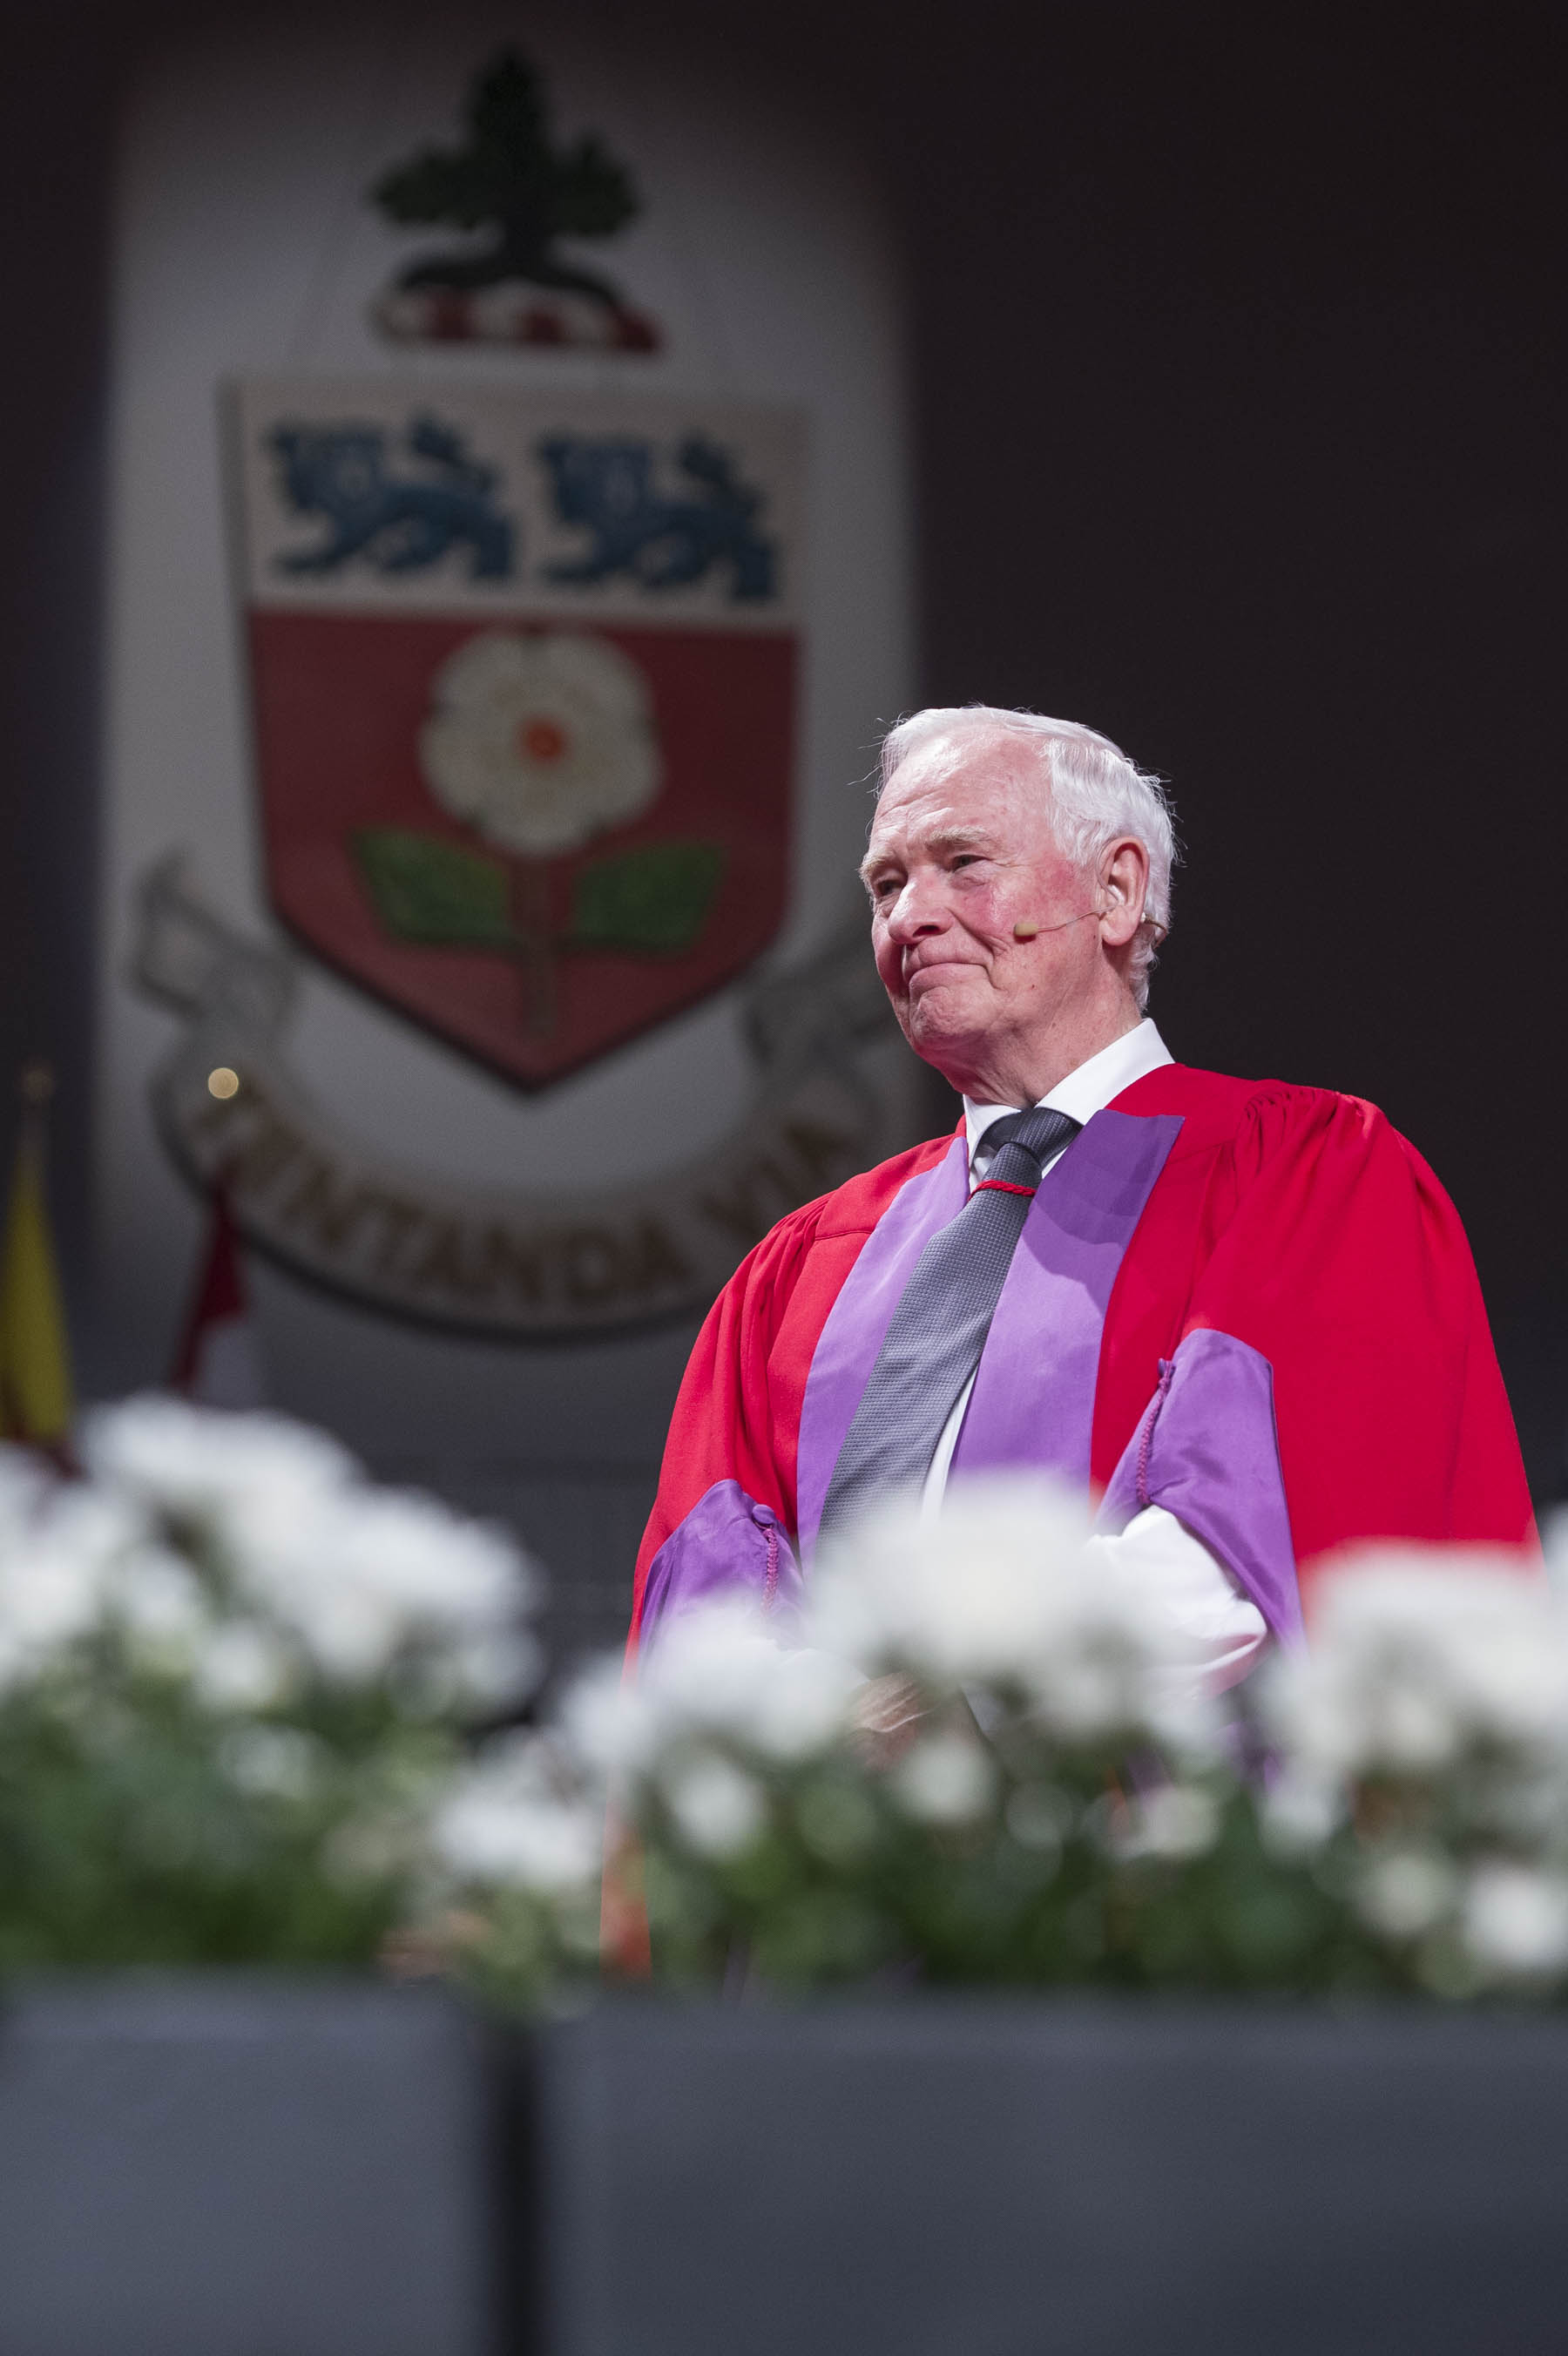 His Excellency received an honorary degree and delivered a convocation address to students graduating from the Faculty of Education at York University.